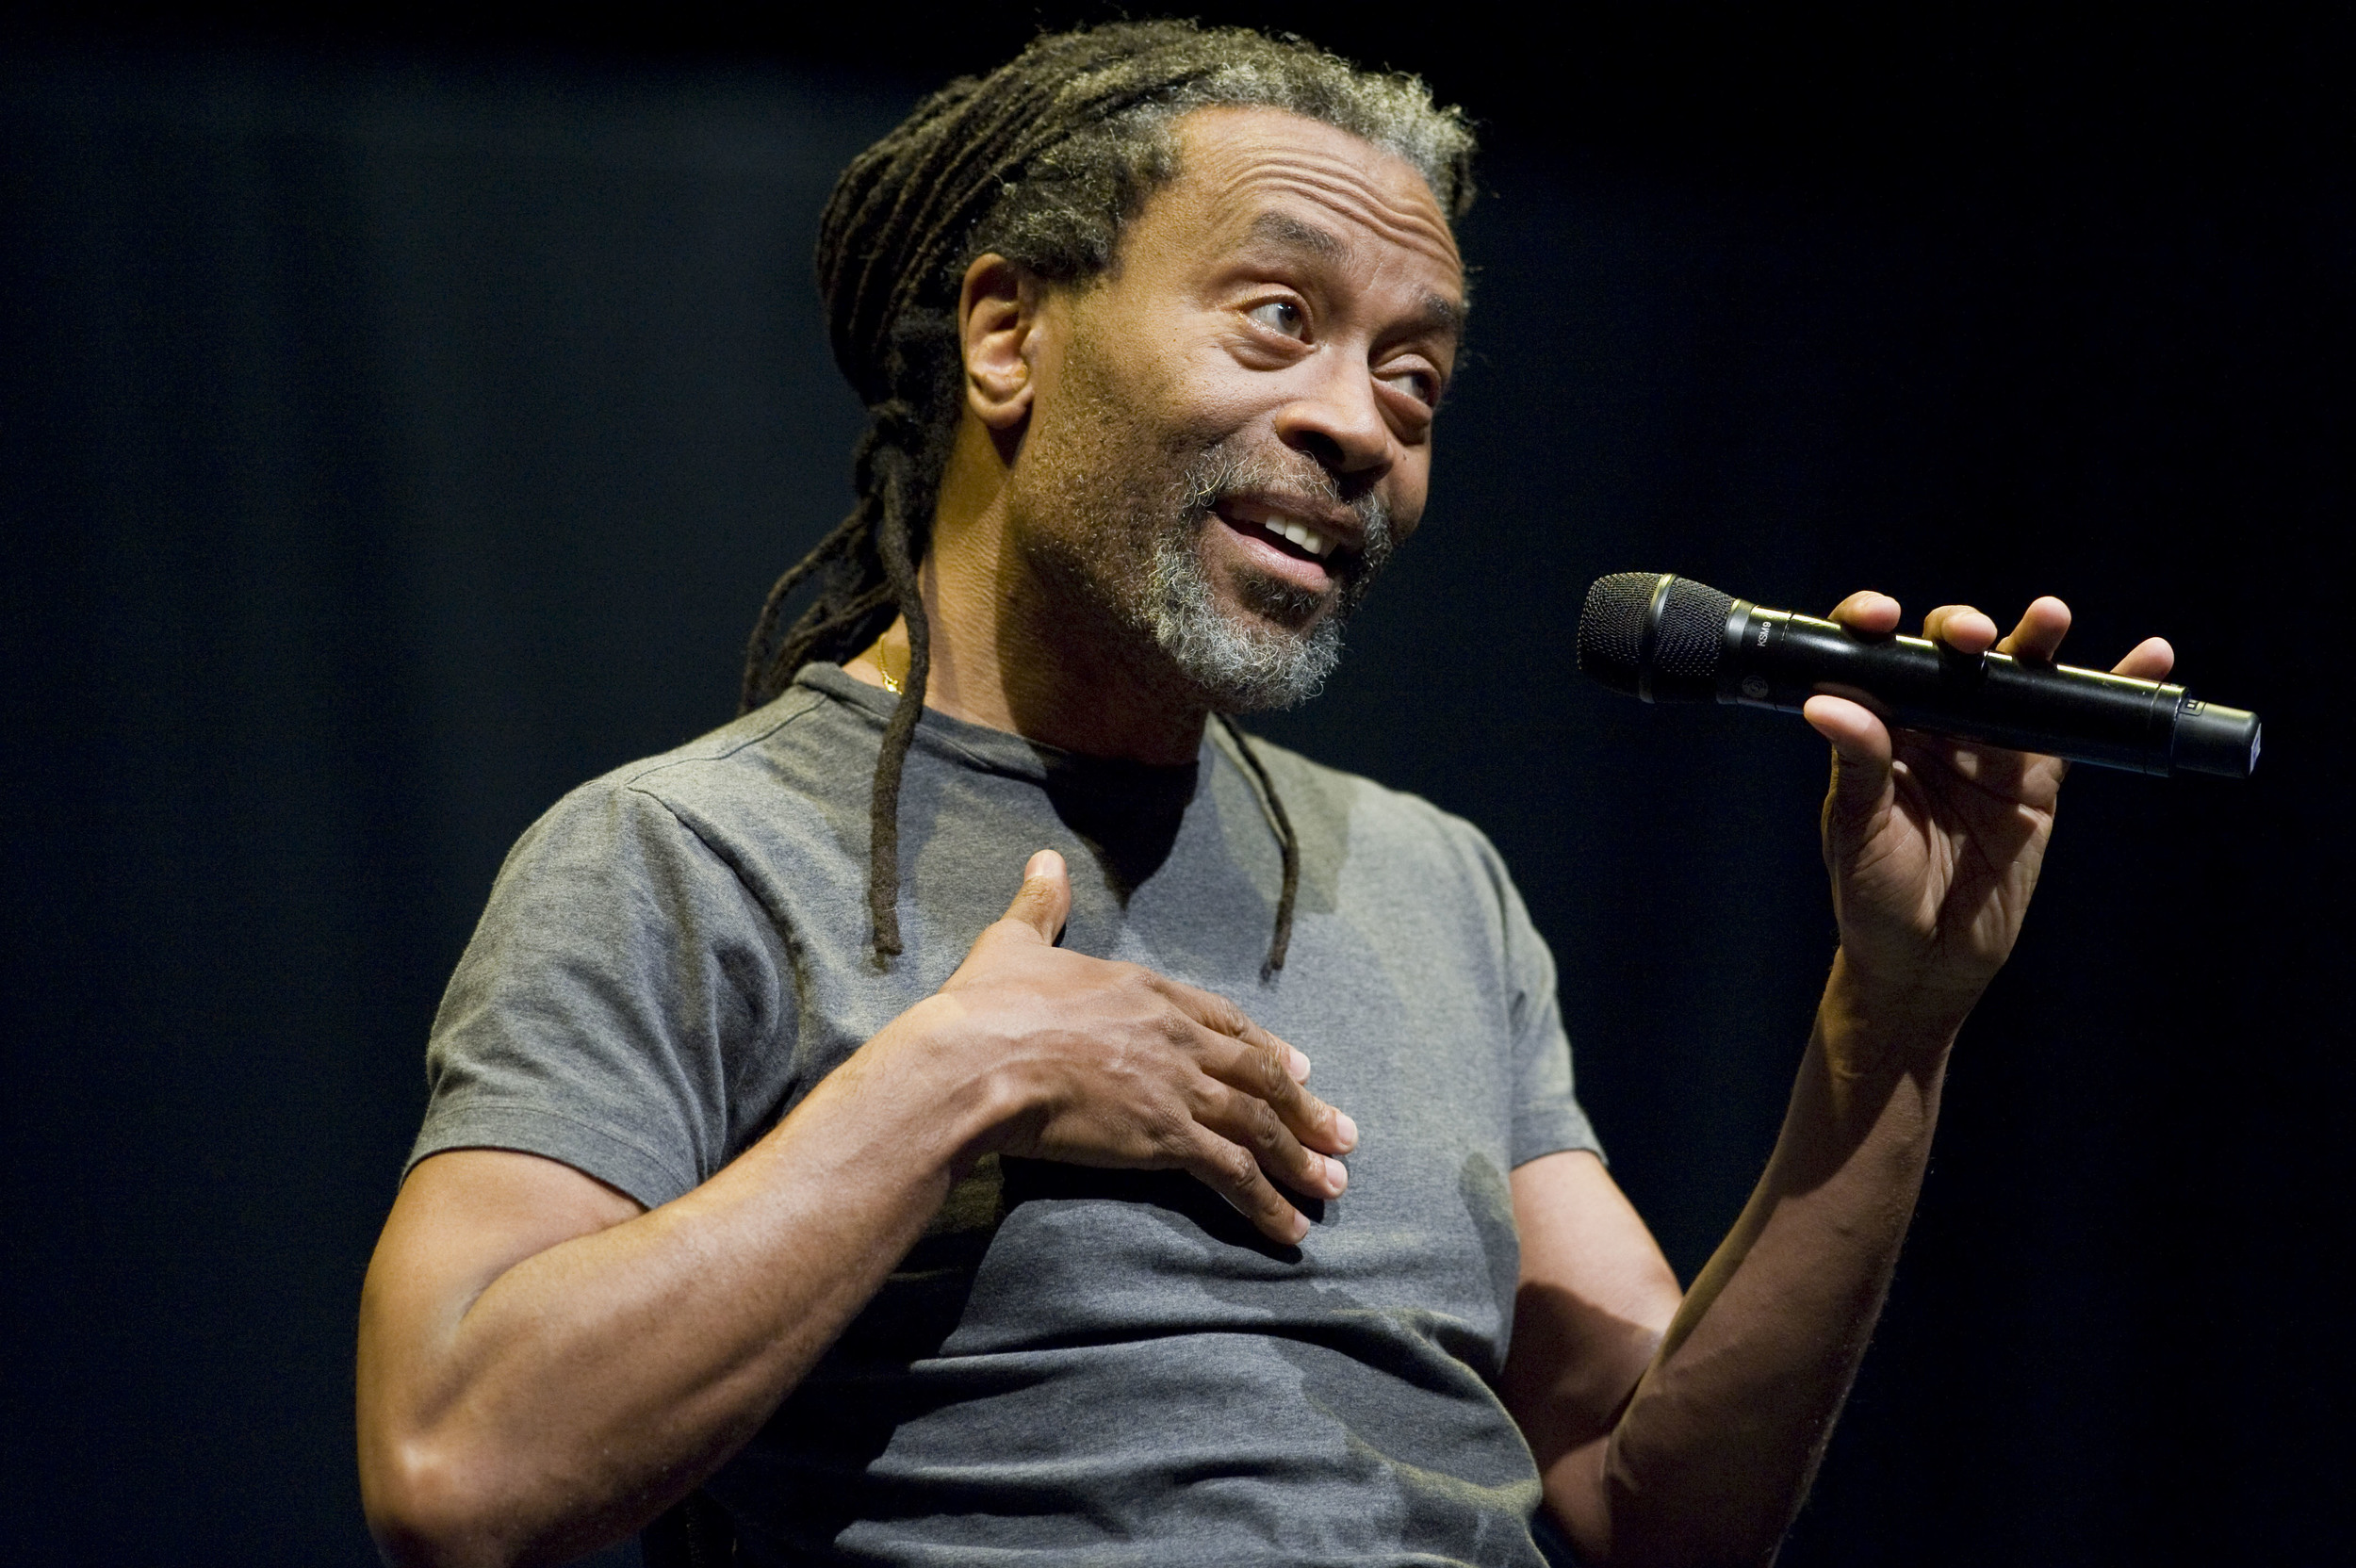 BobbyMcFerrin_RFH_June17th_09_BBritton07.JPG